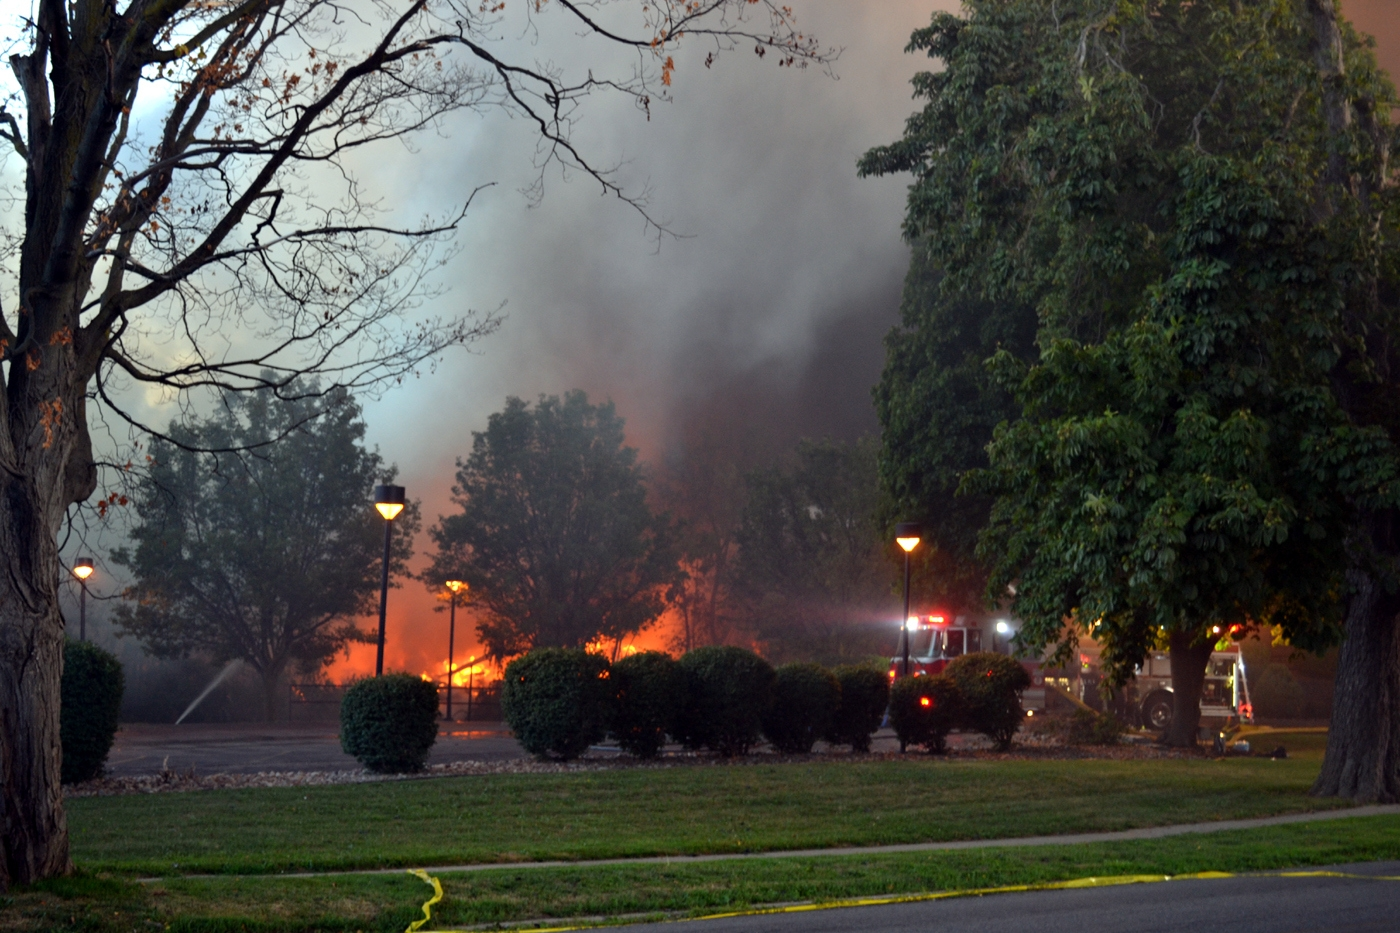 A fire on Stevens Street in Lockport. (Larry Kensinger/Special to The News)